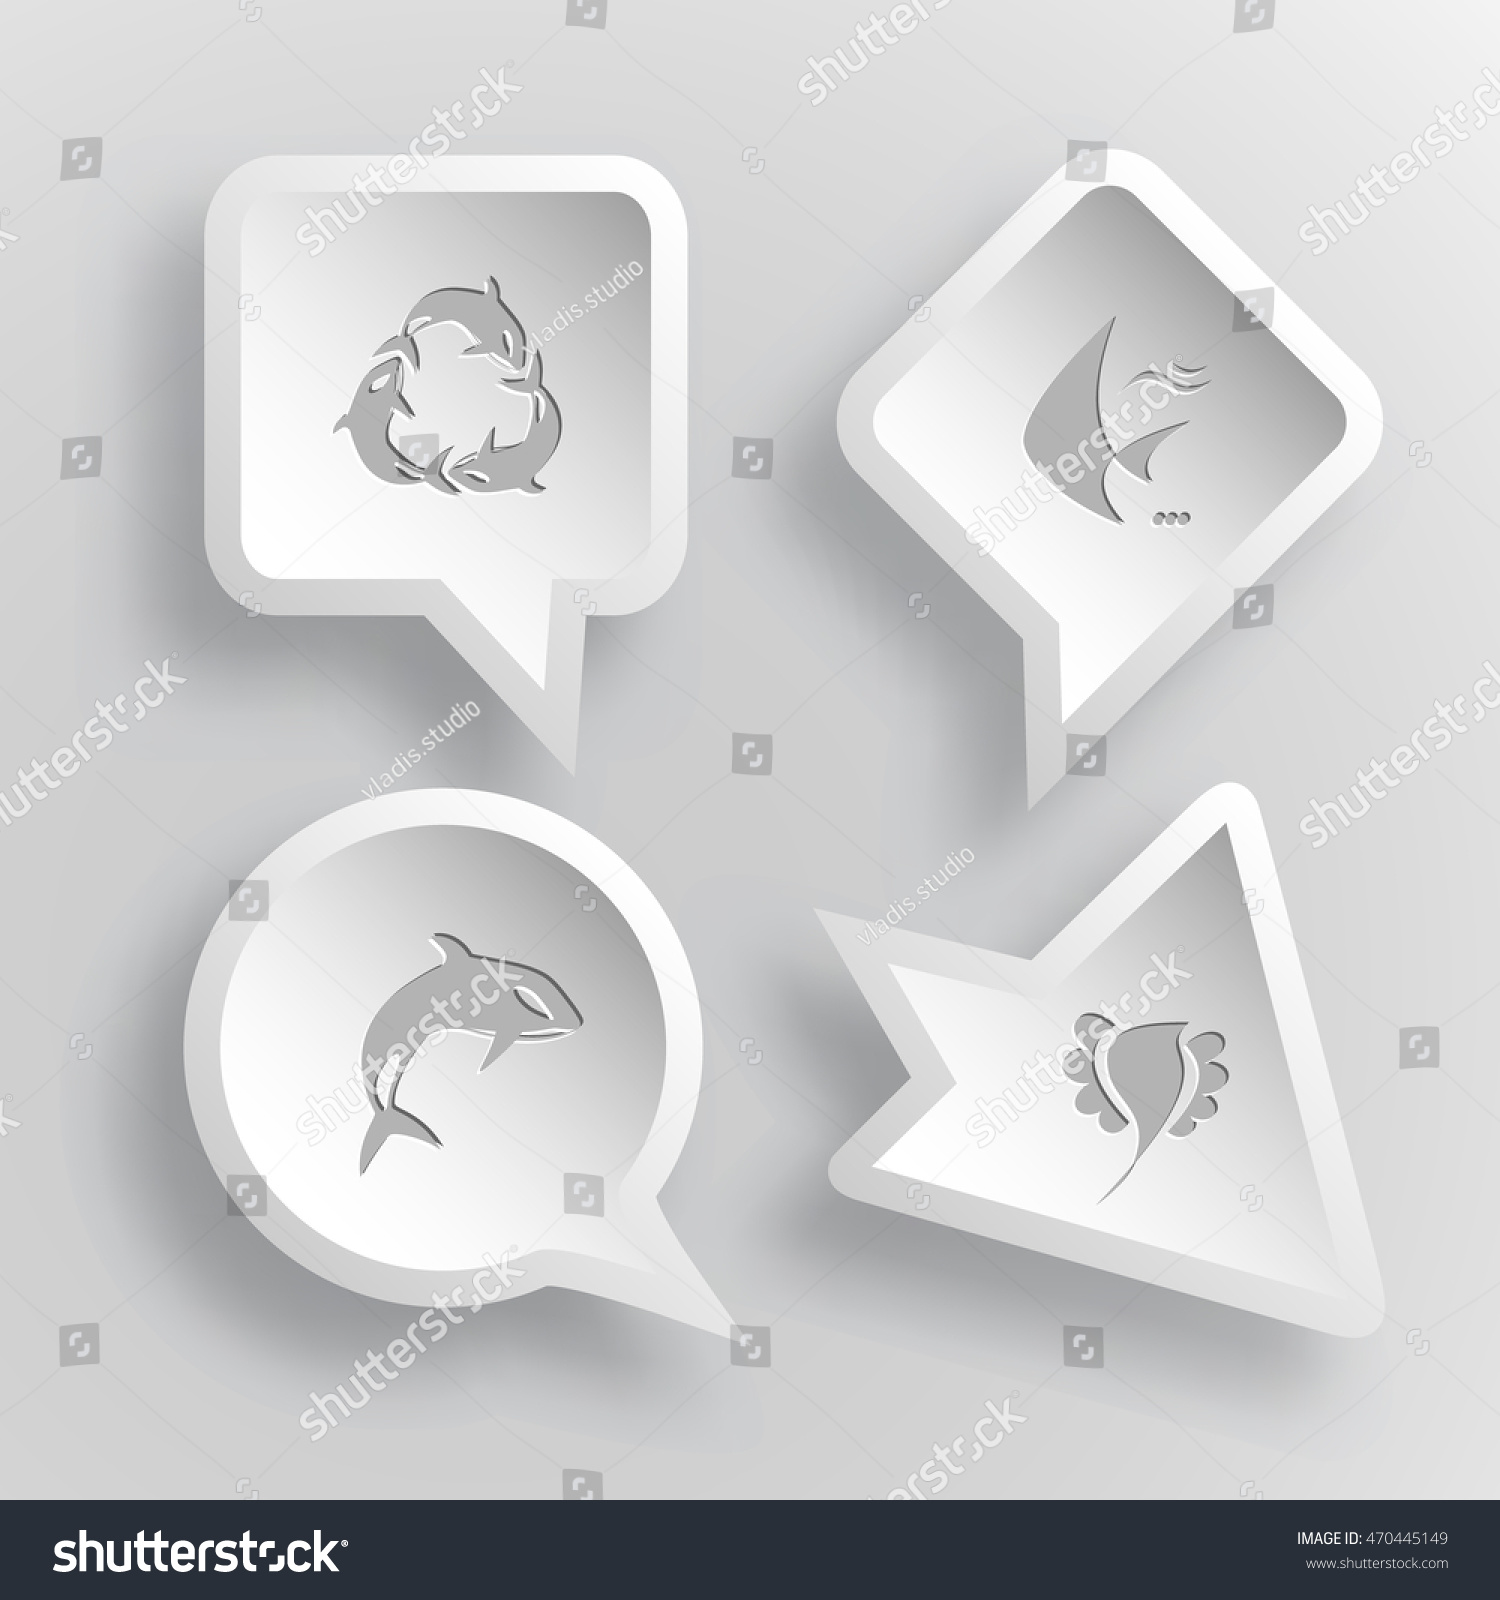 4 images killer whale recycling symbol stock vector 470445149 4 images killer whale as recycling symbol fish bird animal set biocorpaavc Choice Image